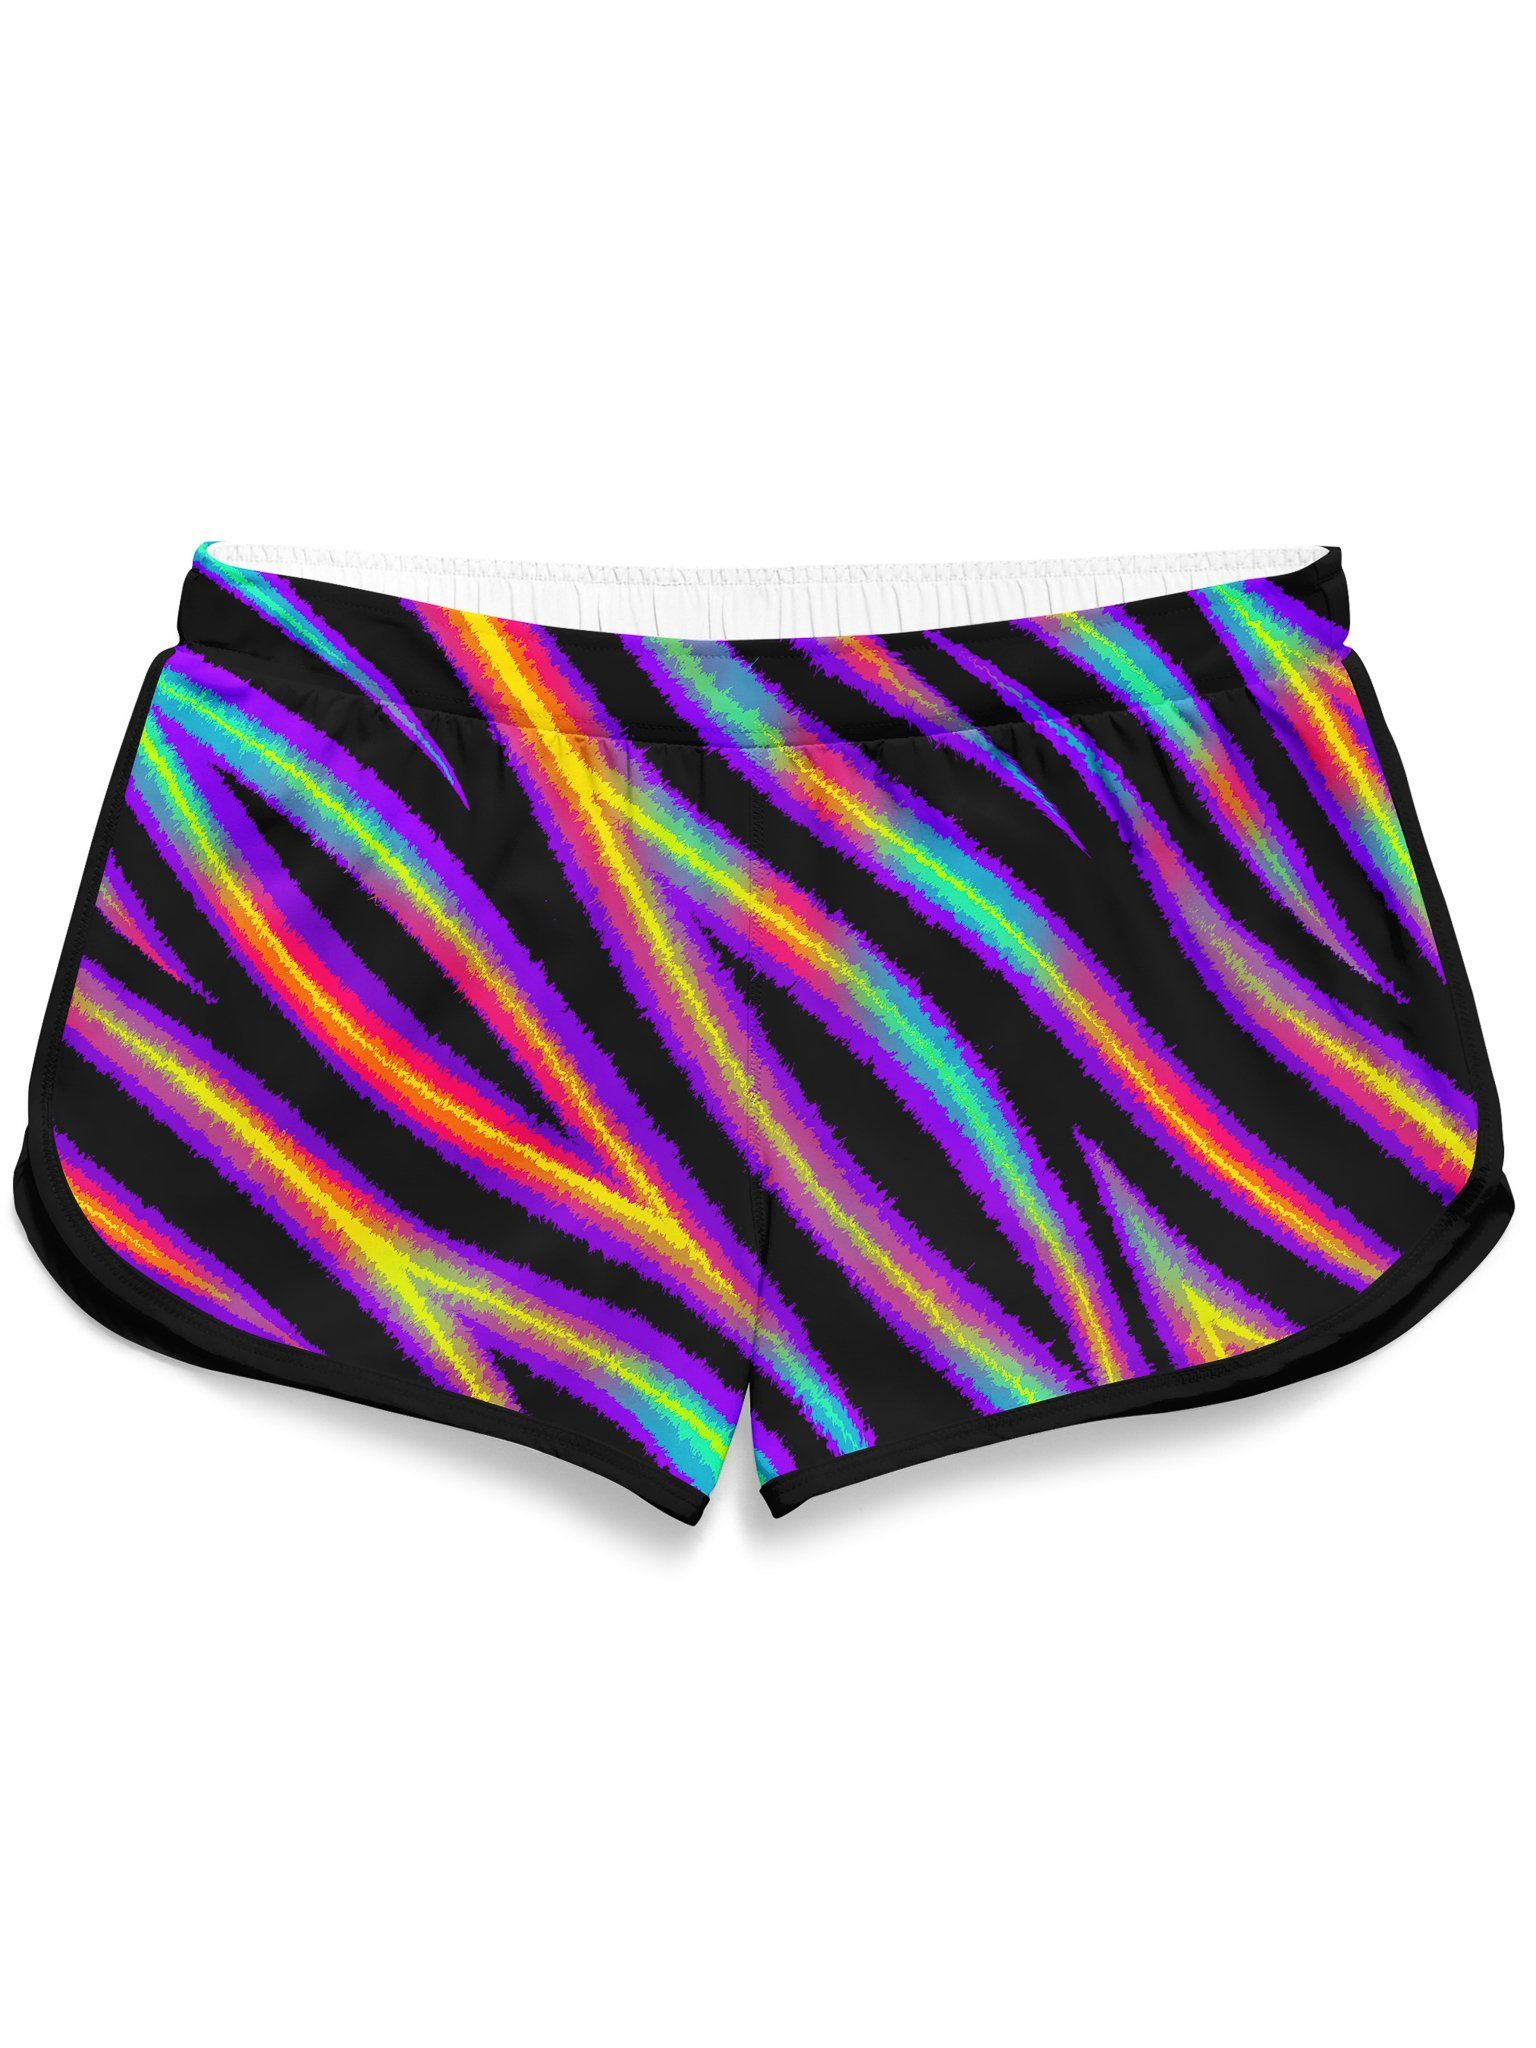 Tiger Stripes (Colorful) Retro Shorts Women's Shorts Electro Threads